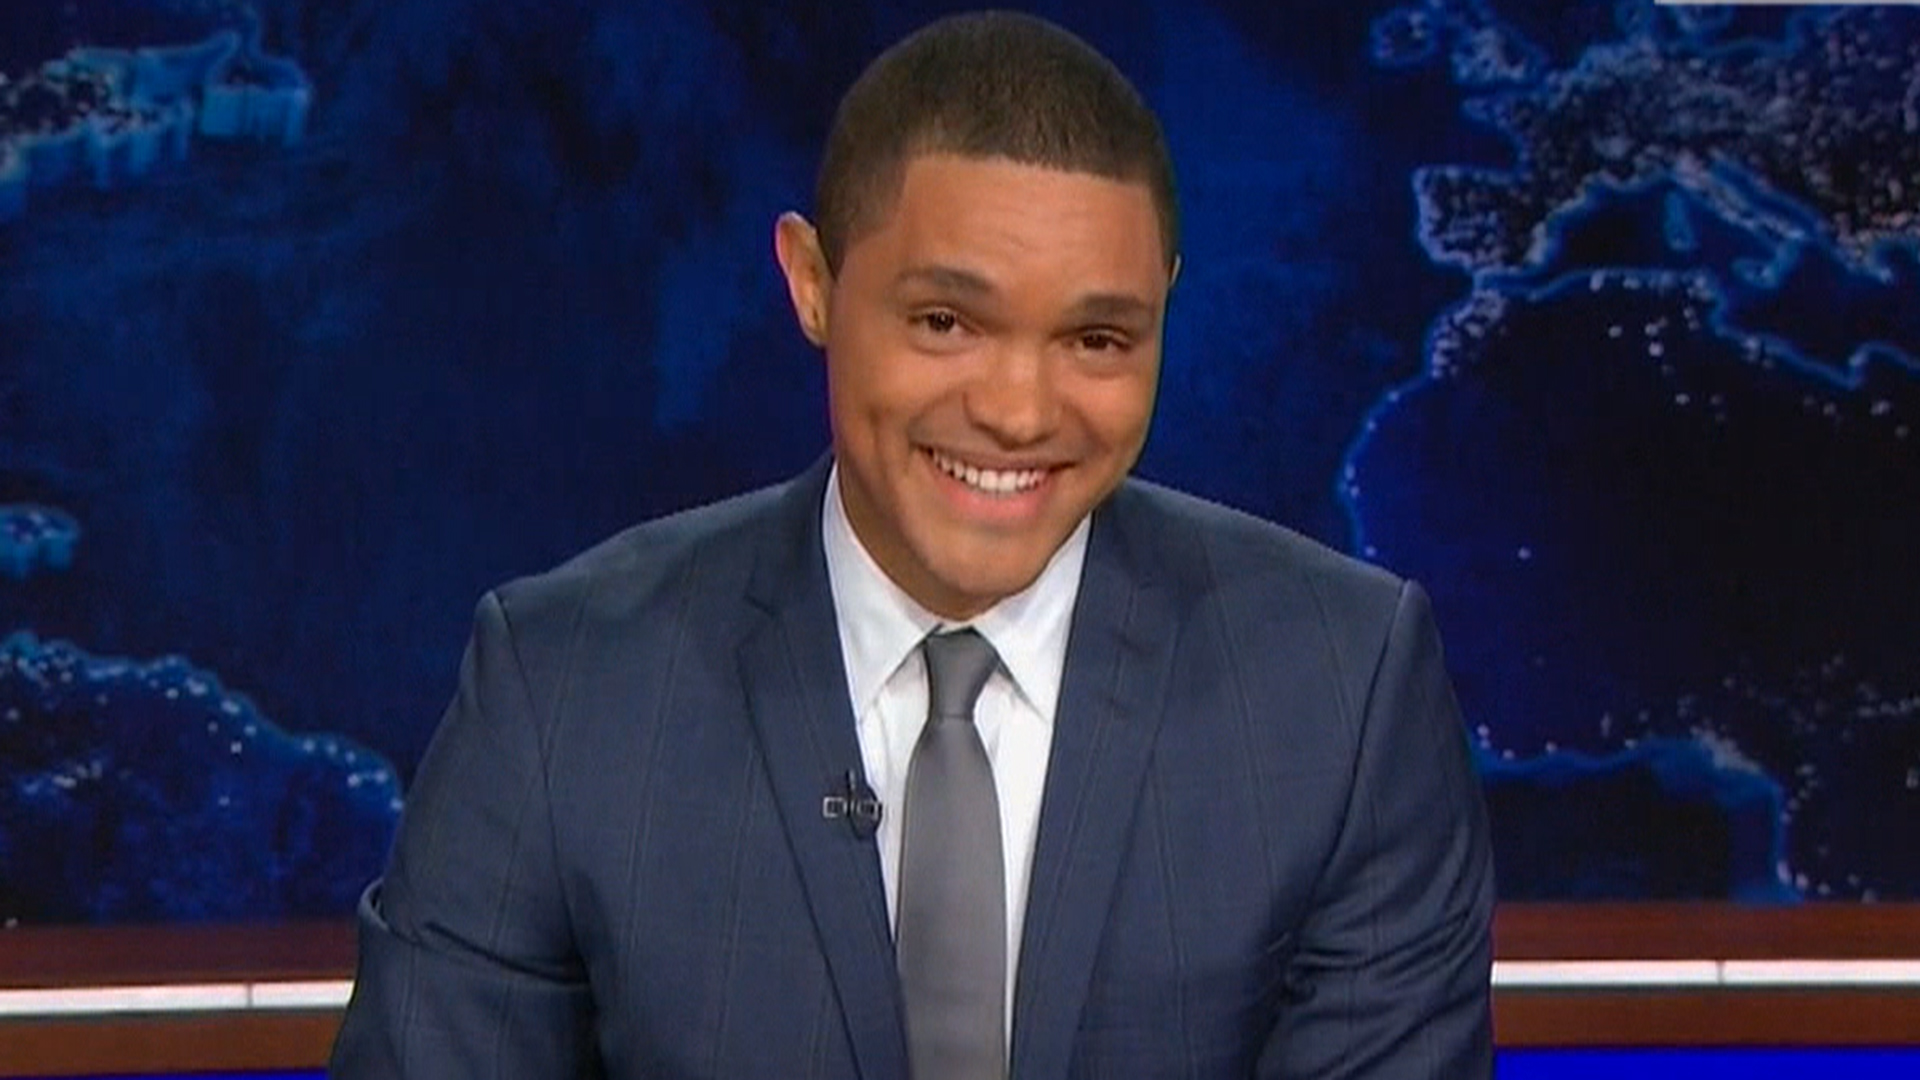 Trevor Noah Takes Over as 'The Daily Show' Host